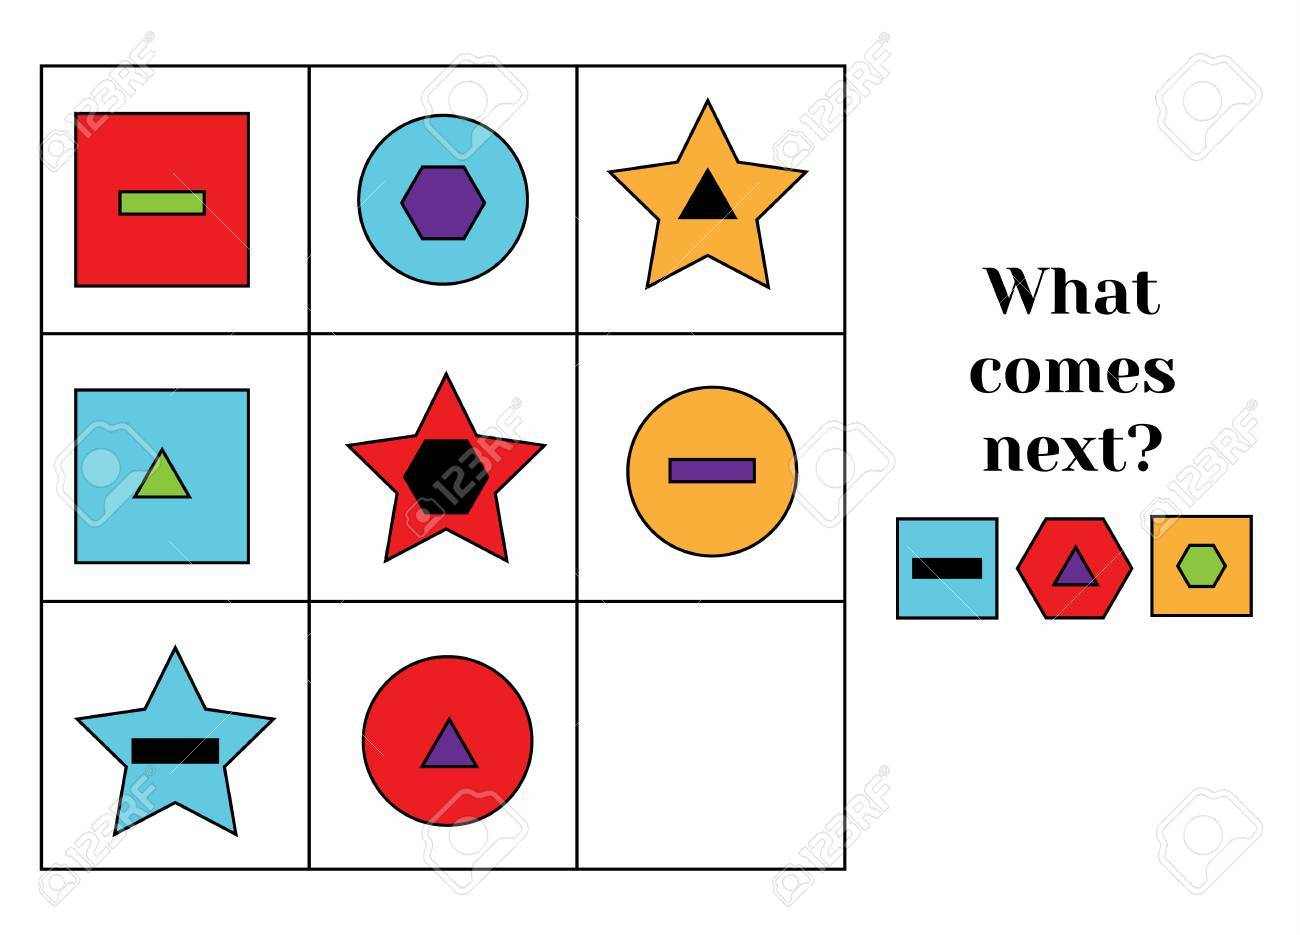 What comes next educational children game. Kids activity sheet, training logic, continue the row task. Learning shapes and colors - 63021922